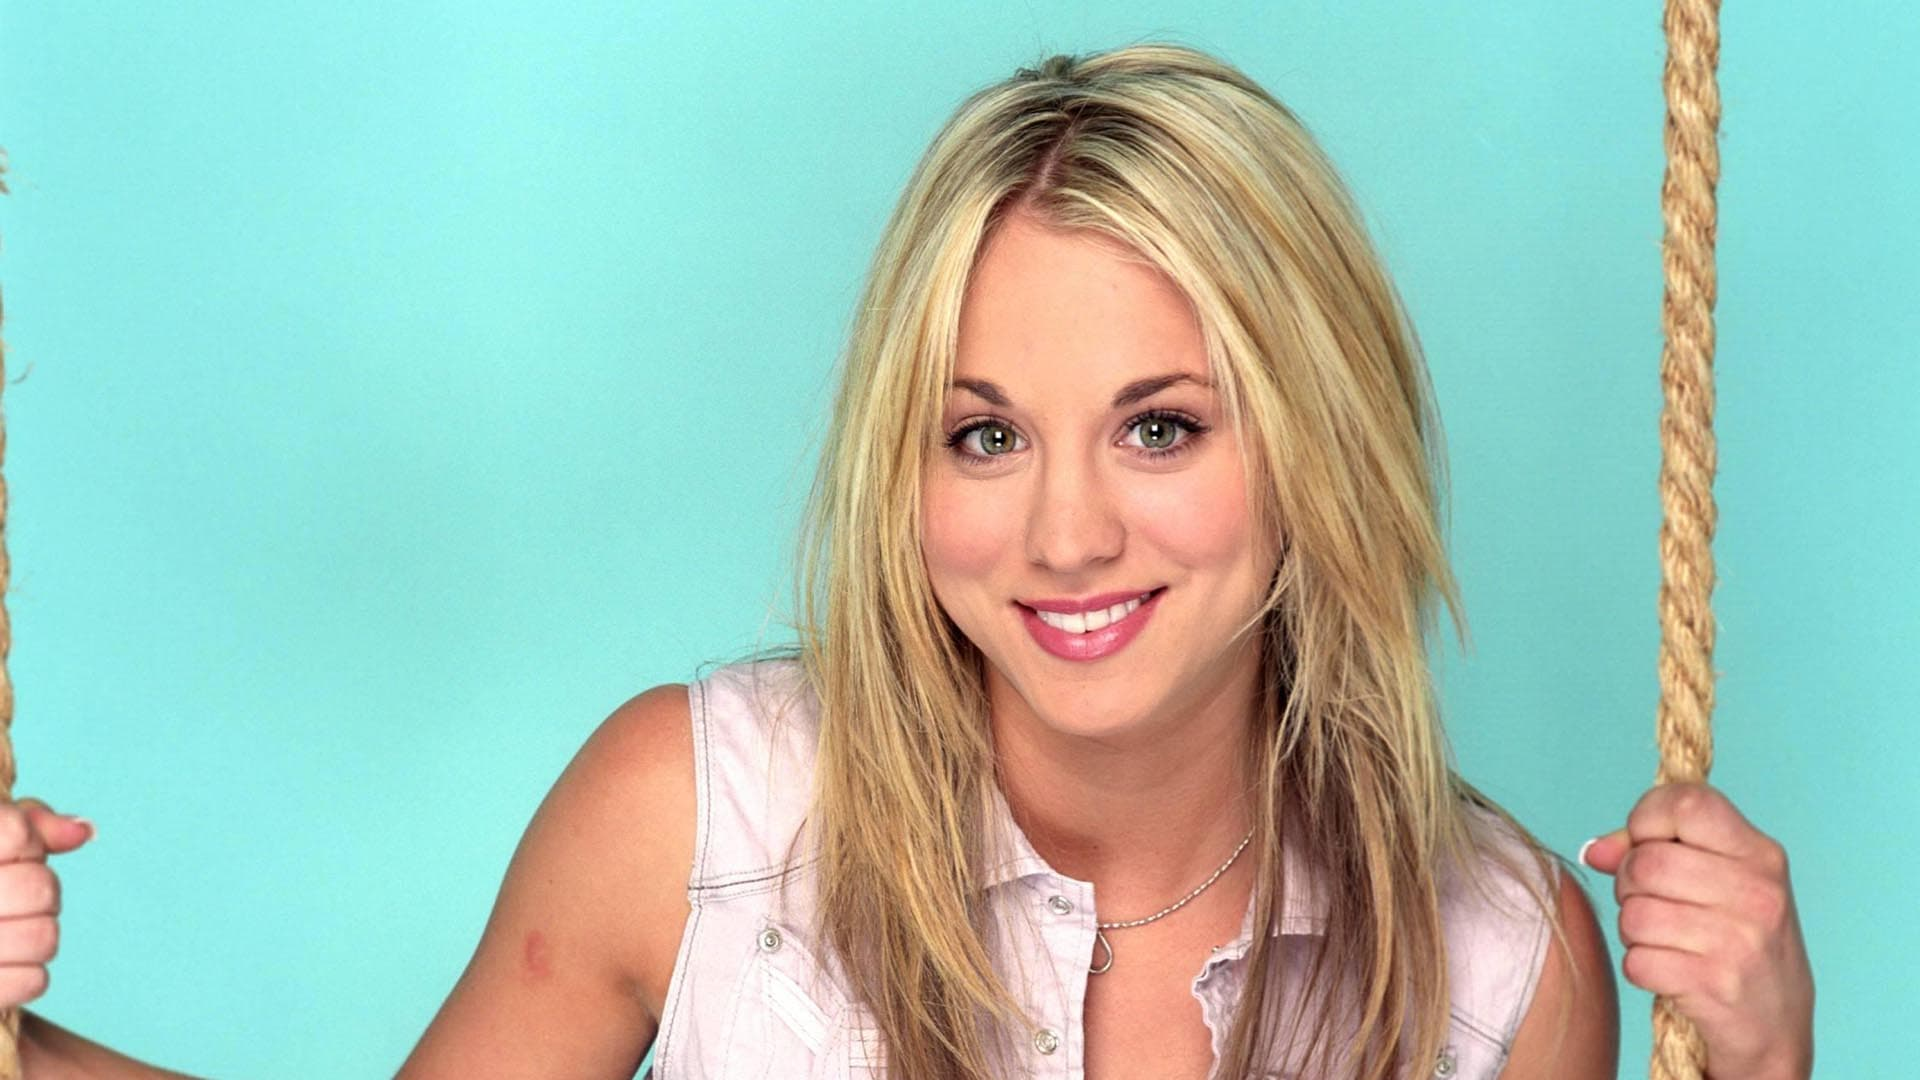 Kaley Cuoco smile new 2016 wallpaper